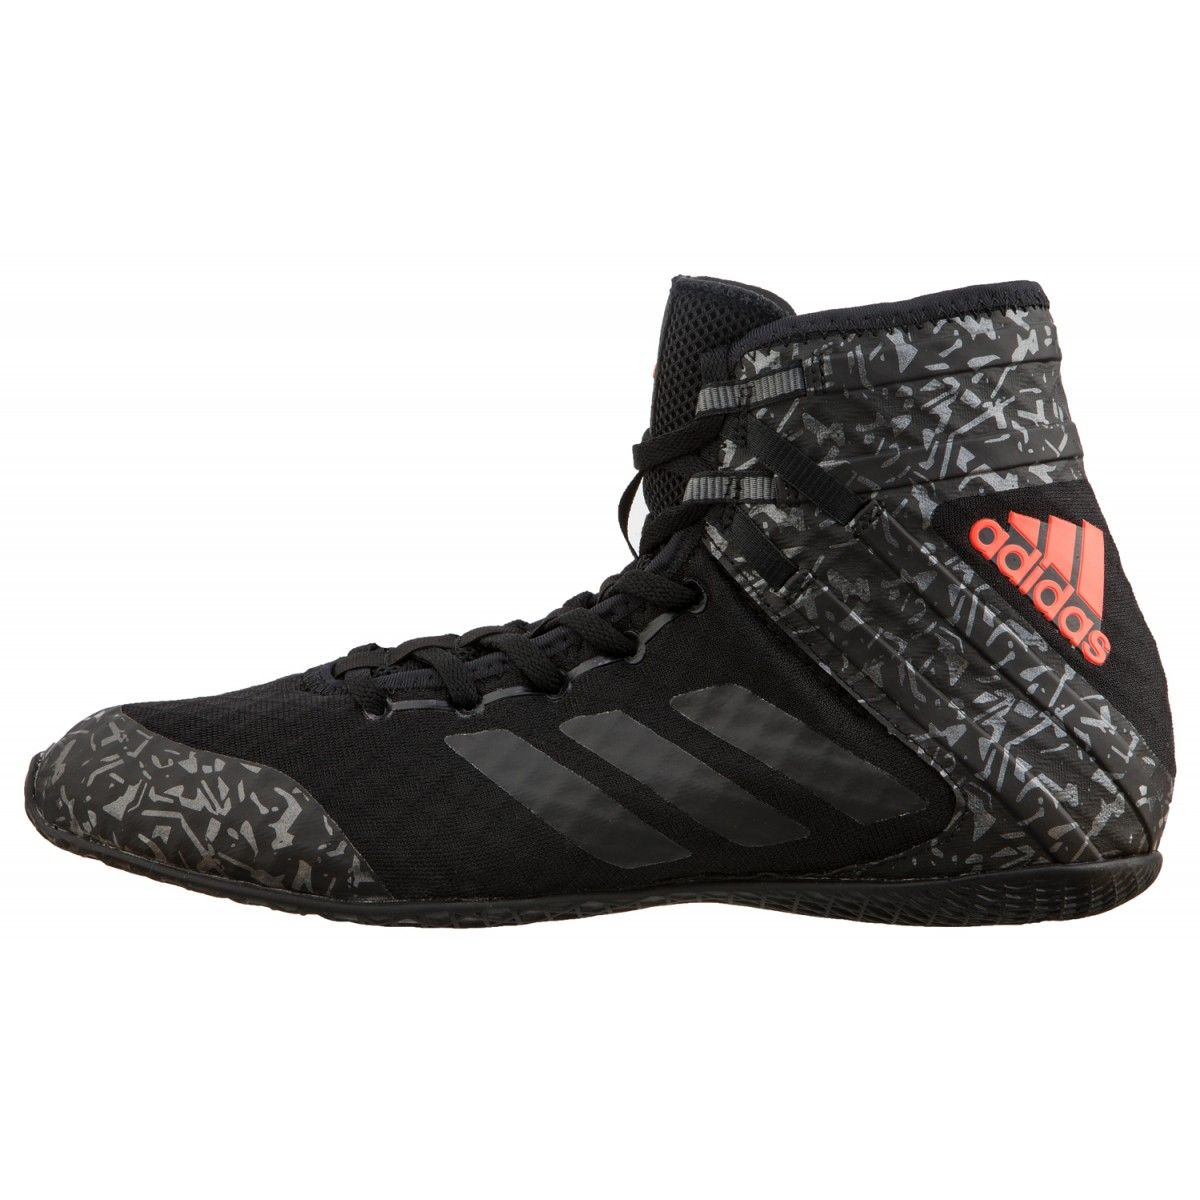 Women's Speedex Limited Edition Adidas Mid Boxing Shoes